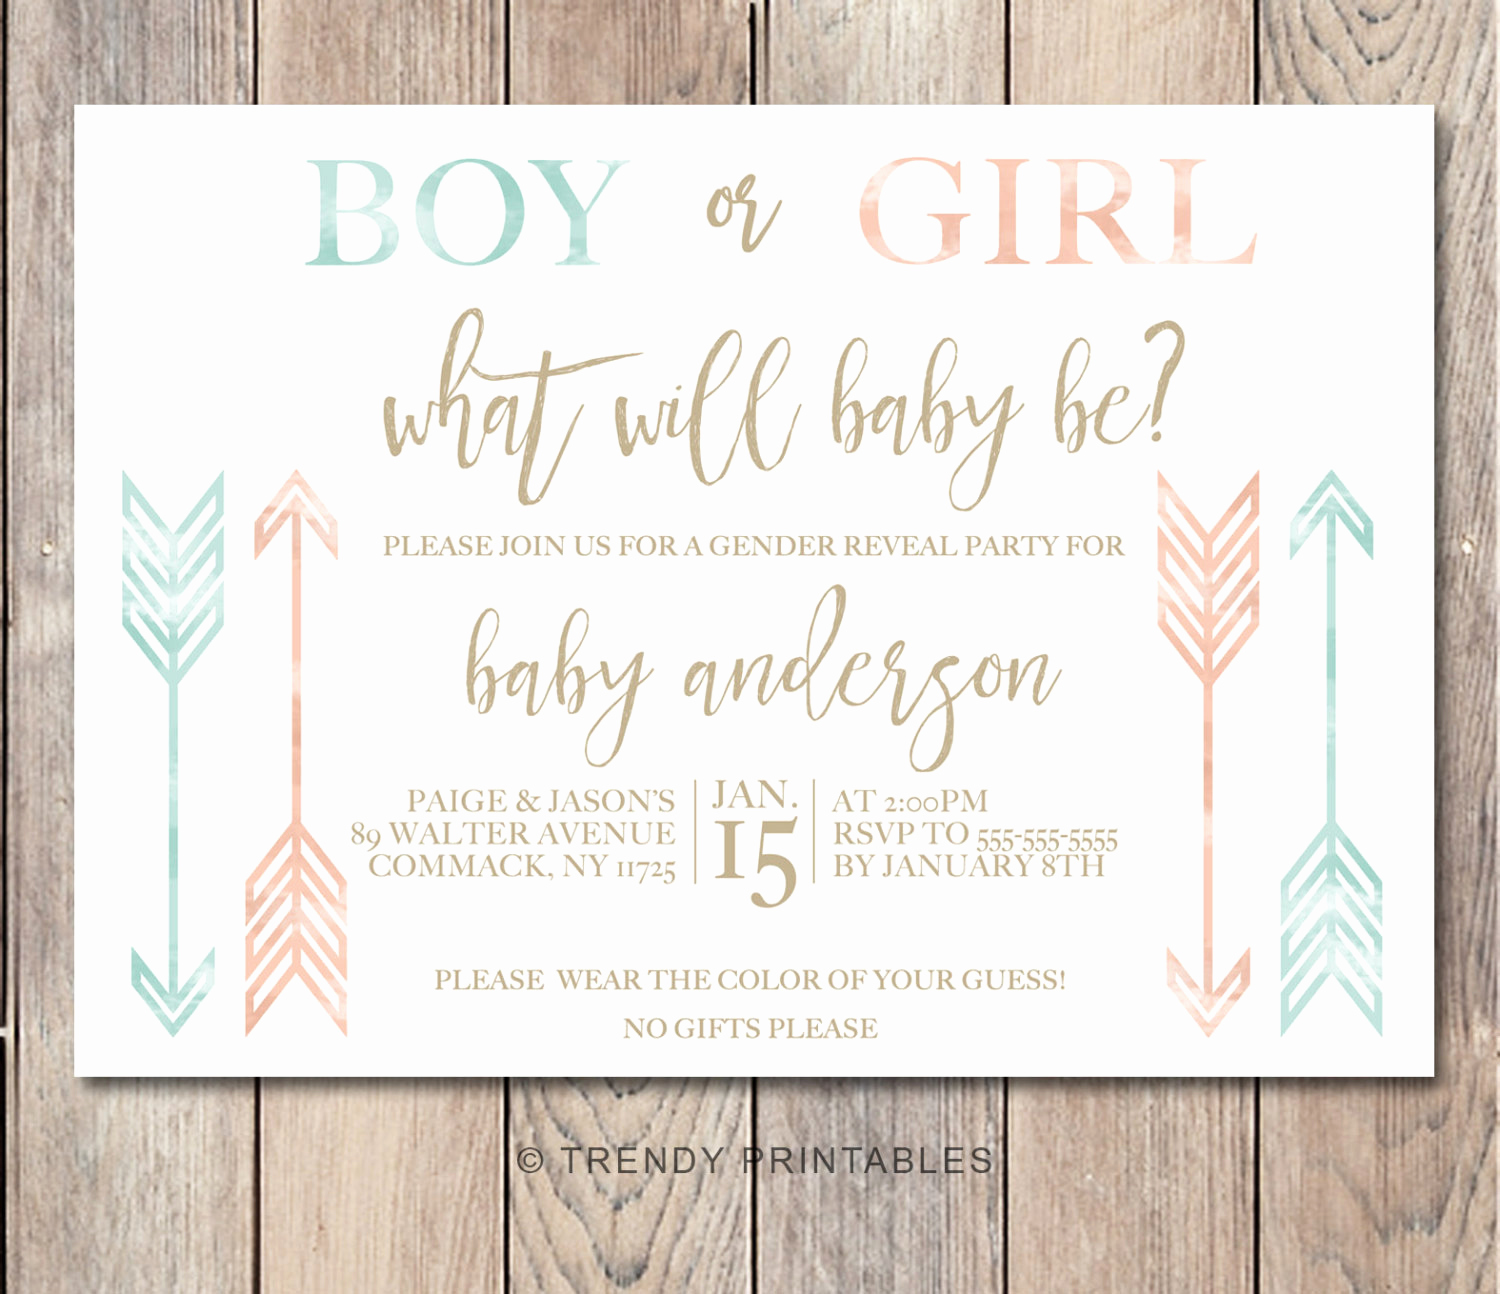 Reveal Party Invitation Ideas Fresh Gender Reveal Invitation Gender Reveal Party Gender Reveal